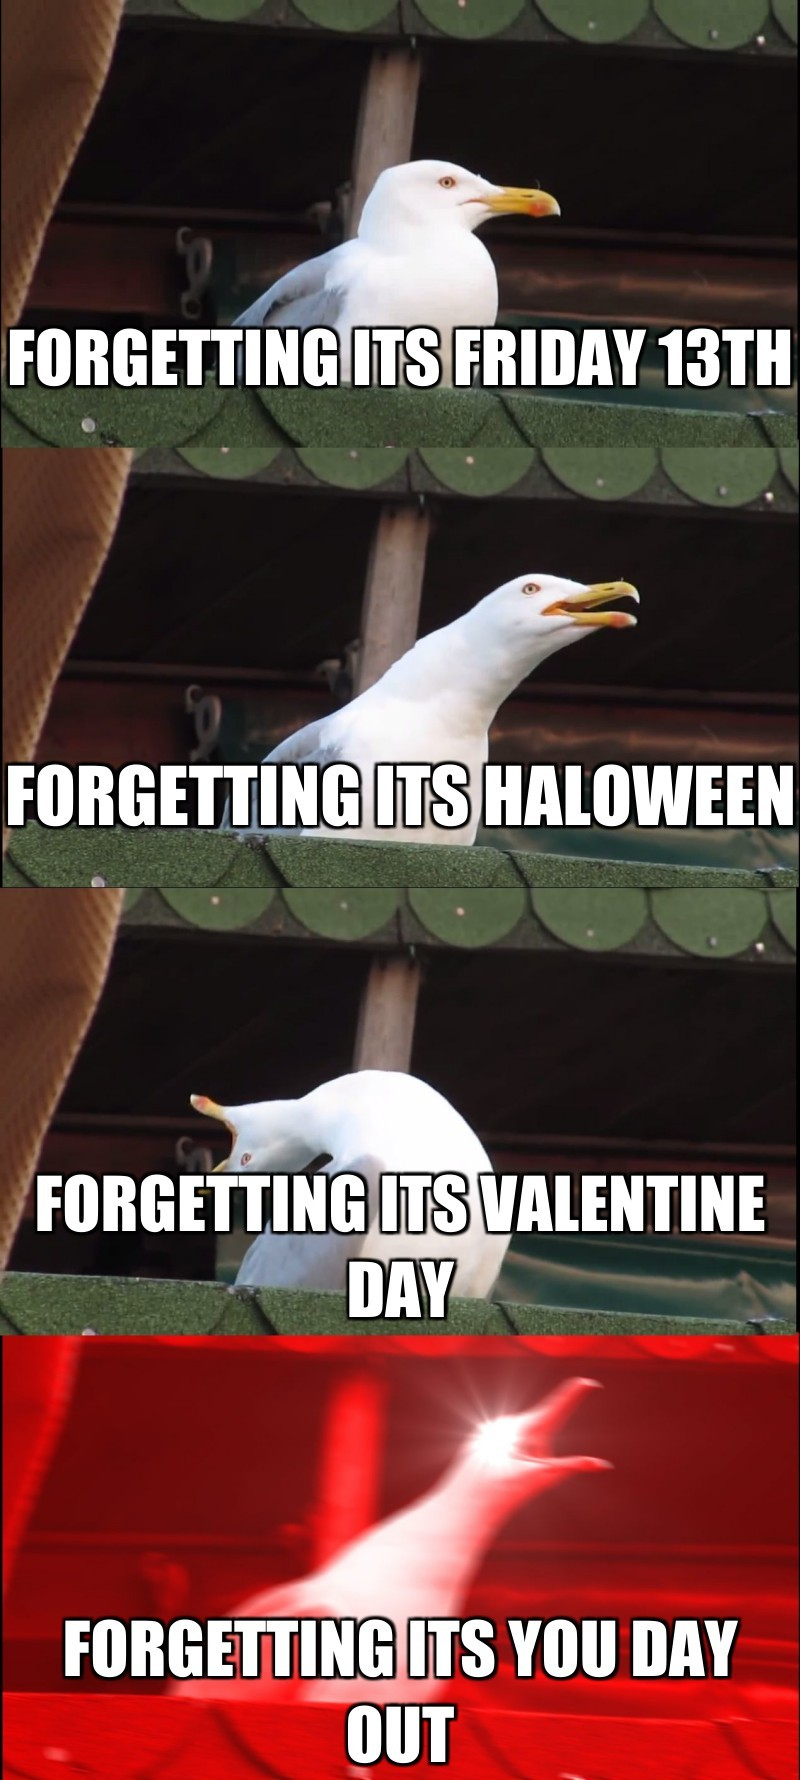 forgetting its you day out; Forgetting its Friday 13th; Forgetting its haloween; Forgetting its valentine day